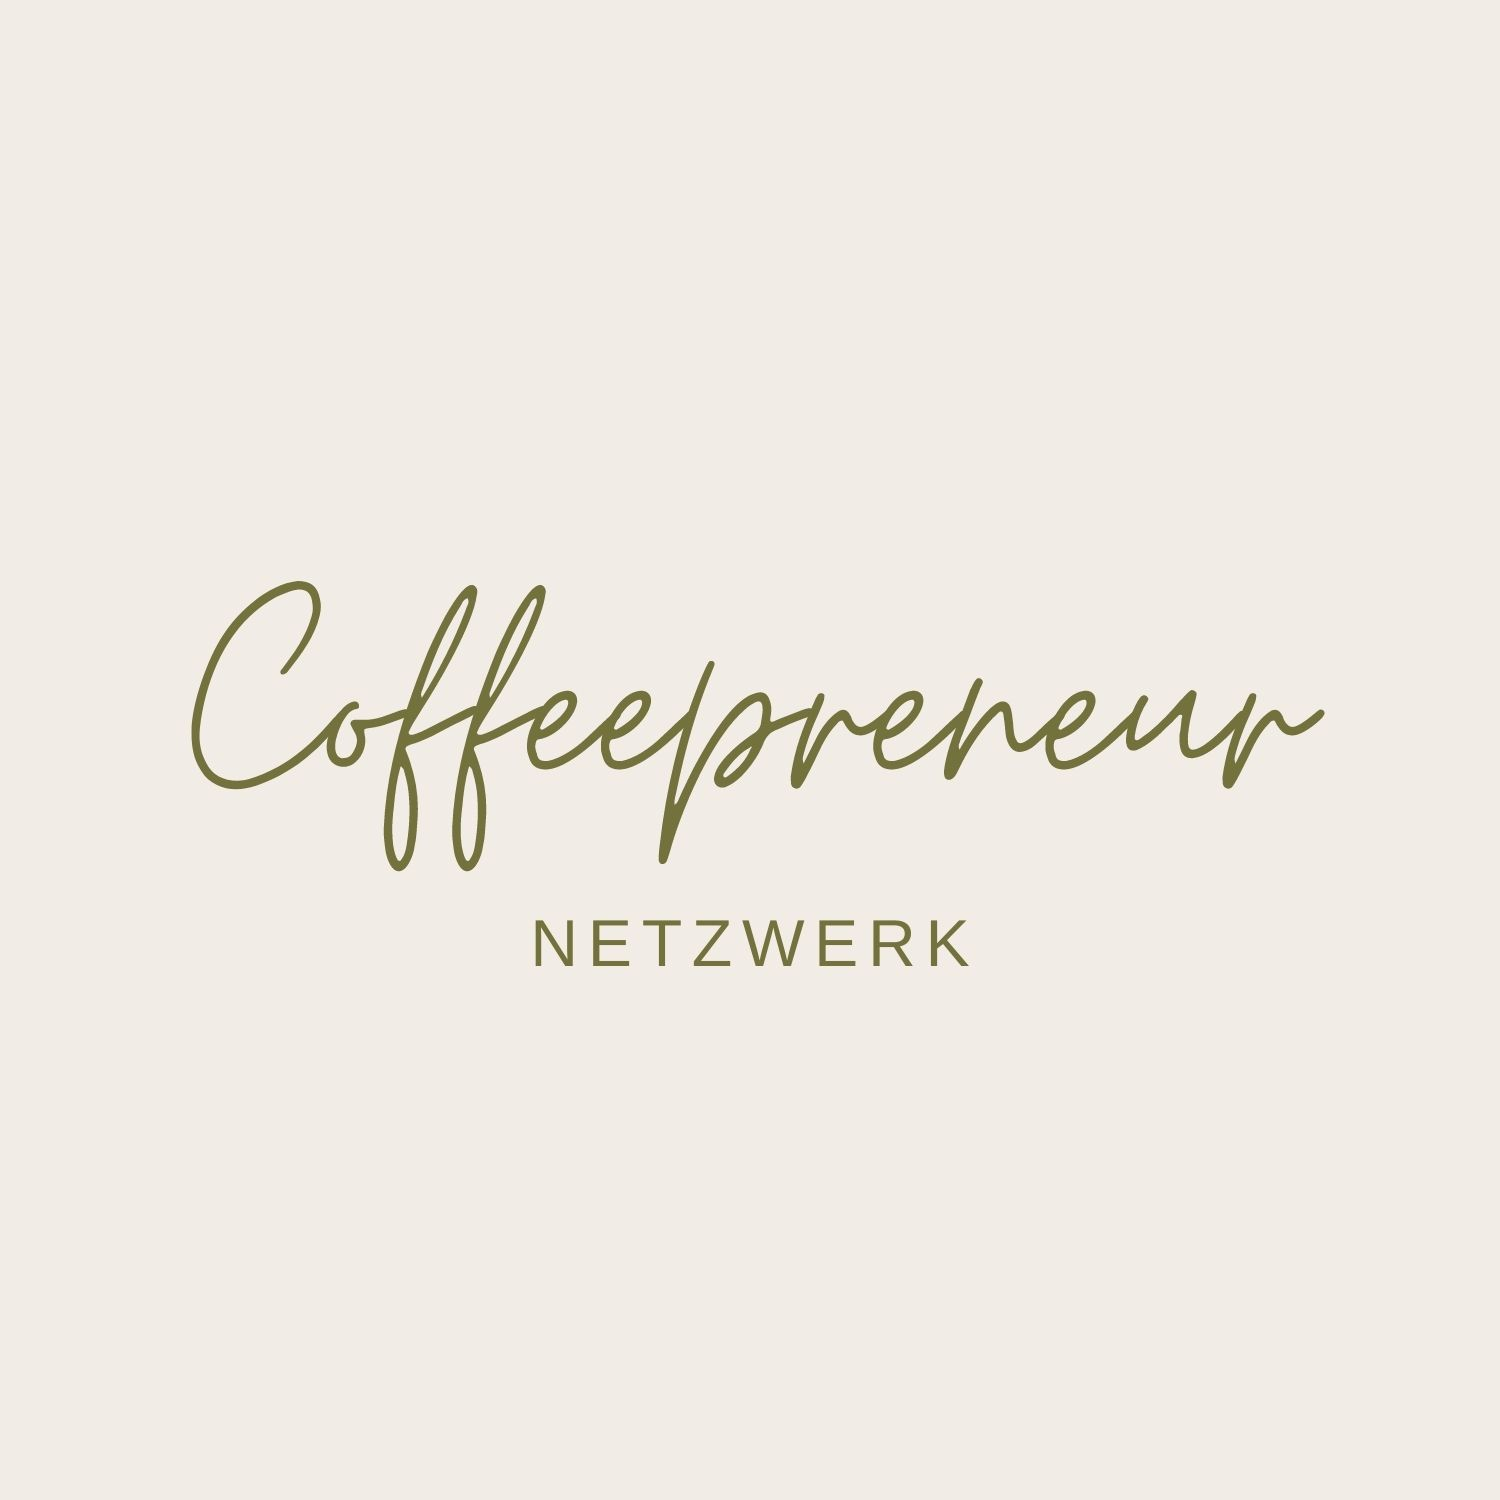 Coffeepreneur Network